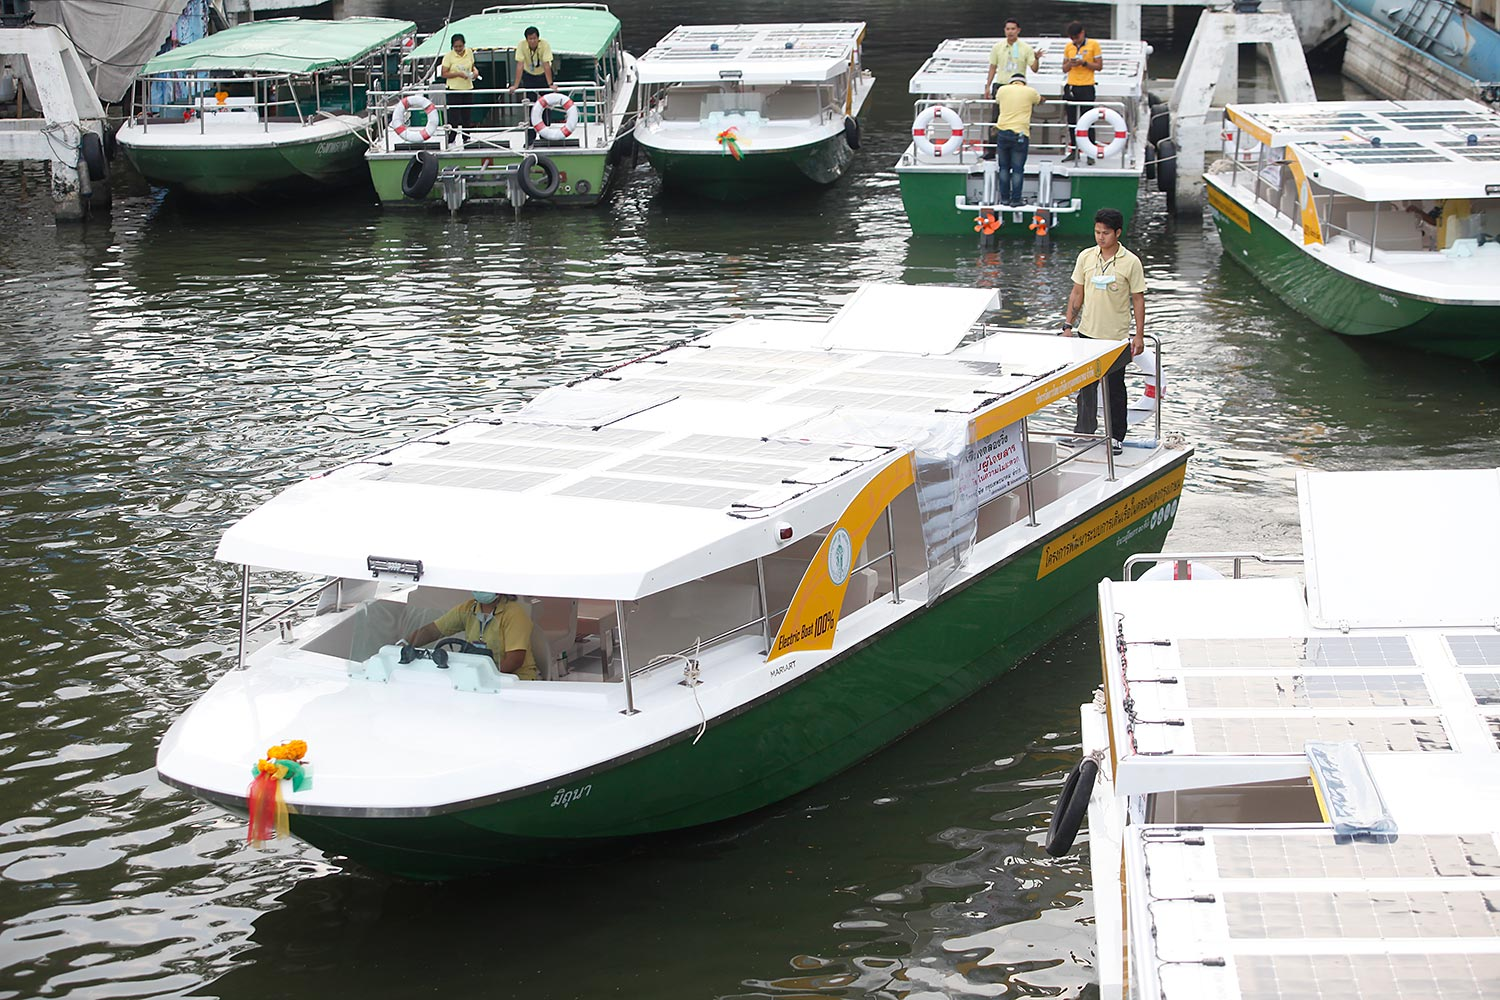 Free rides boost new electric boat service